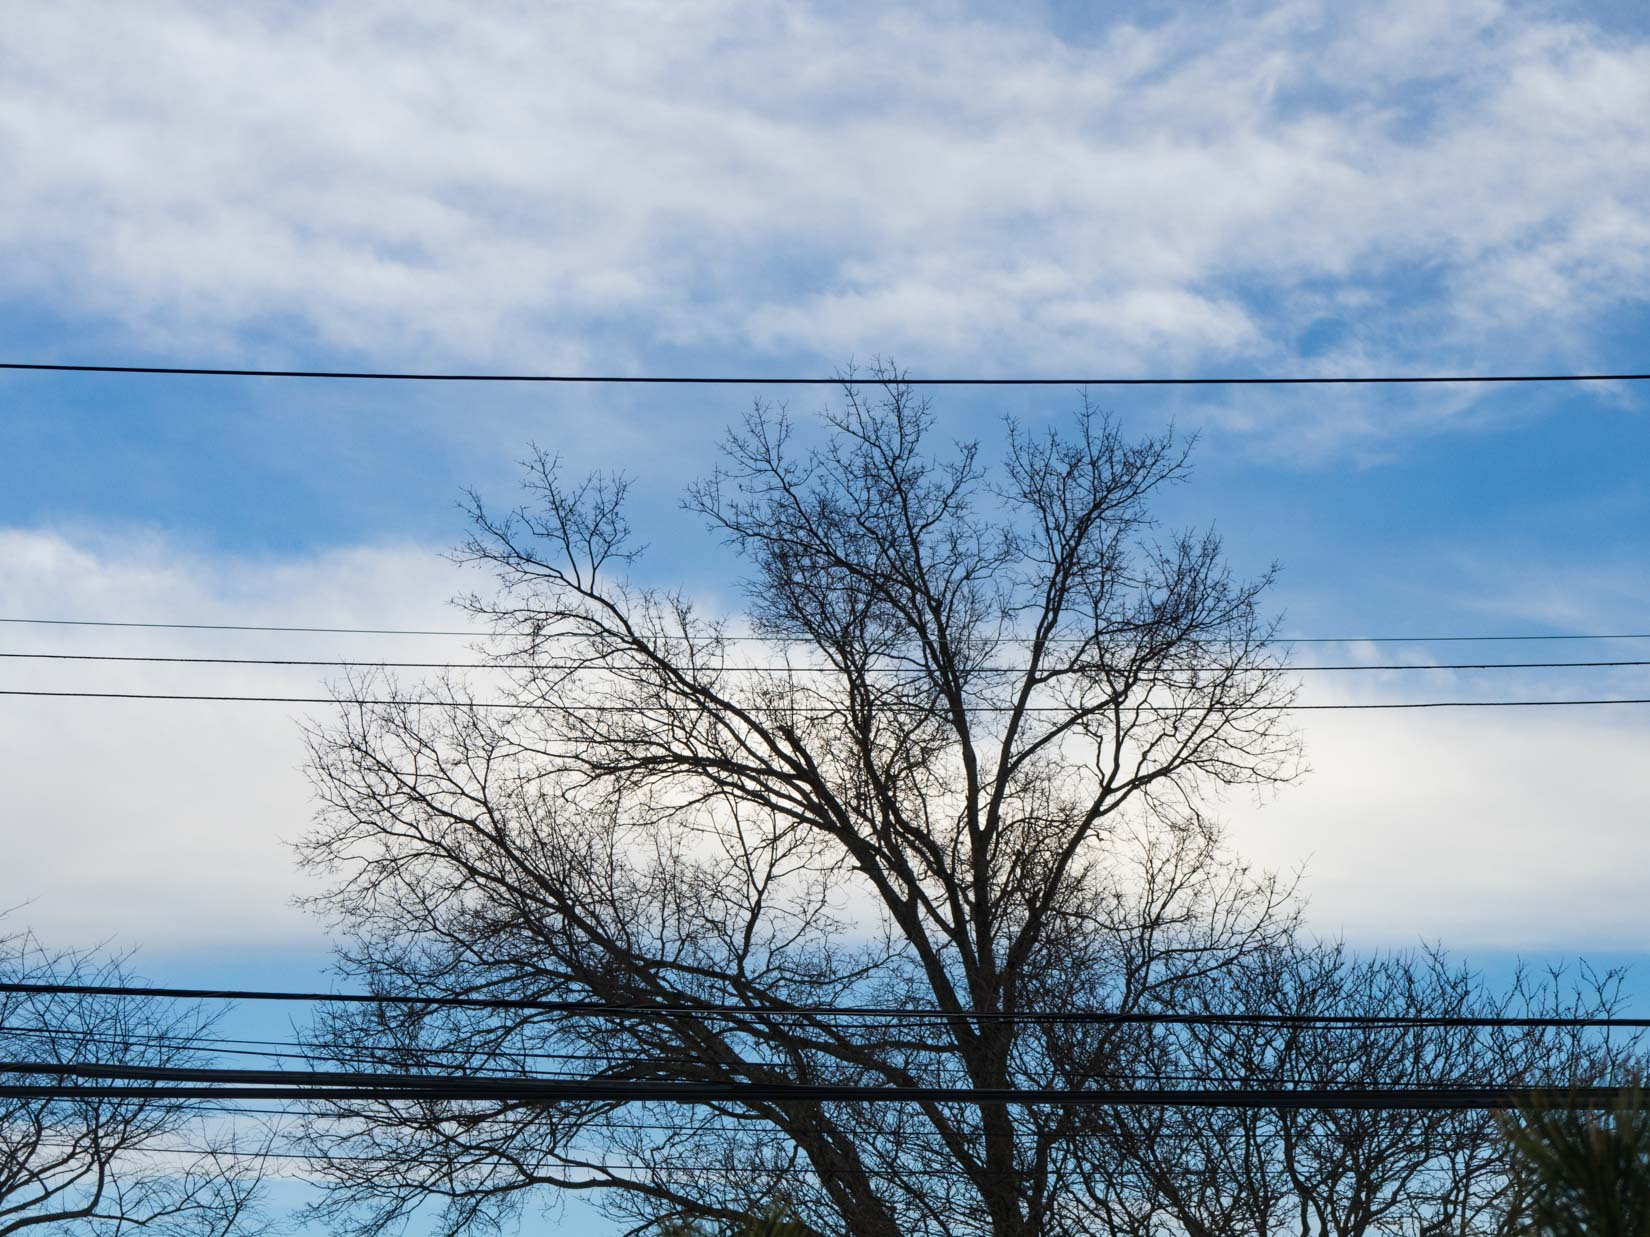 Tree Branches Over Blue Sky and Clouds